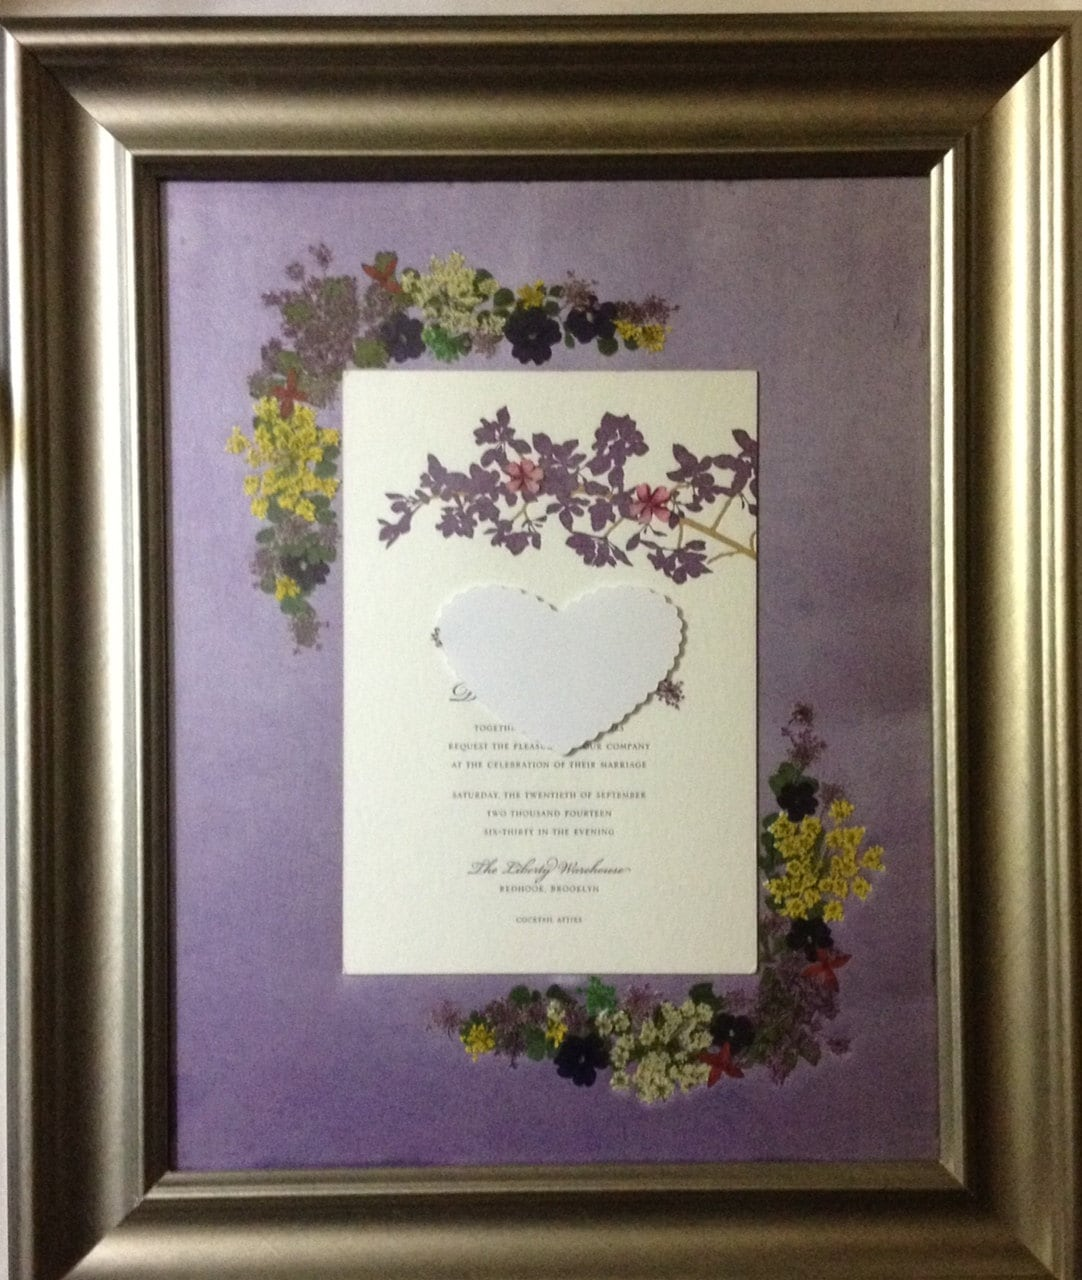 framed wedding invitation pressed flower framed wedding. Black Bedroom Furniture Sets. Home Design Ideas